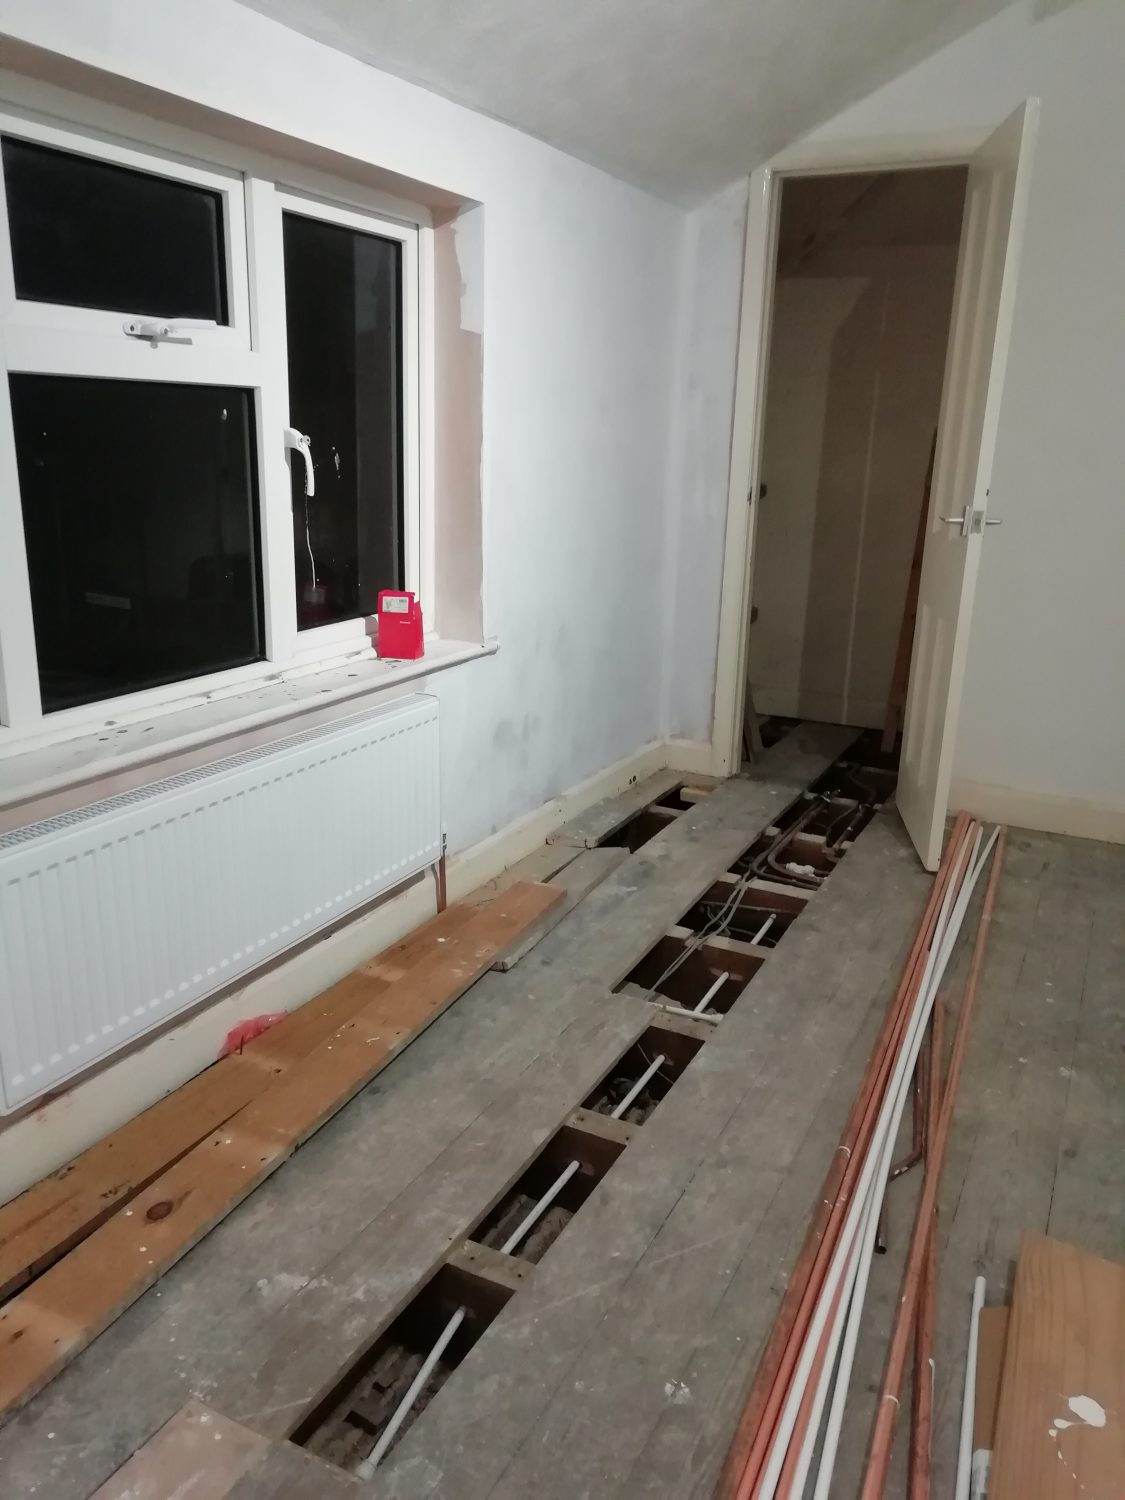 installing new central heating system floor boards lifted